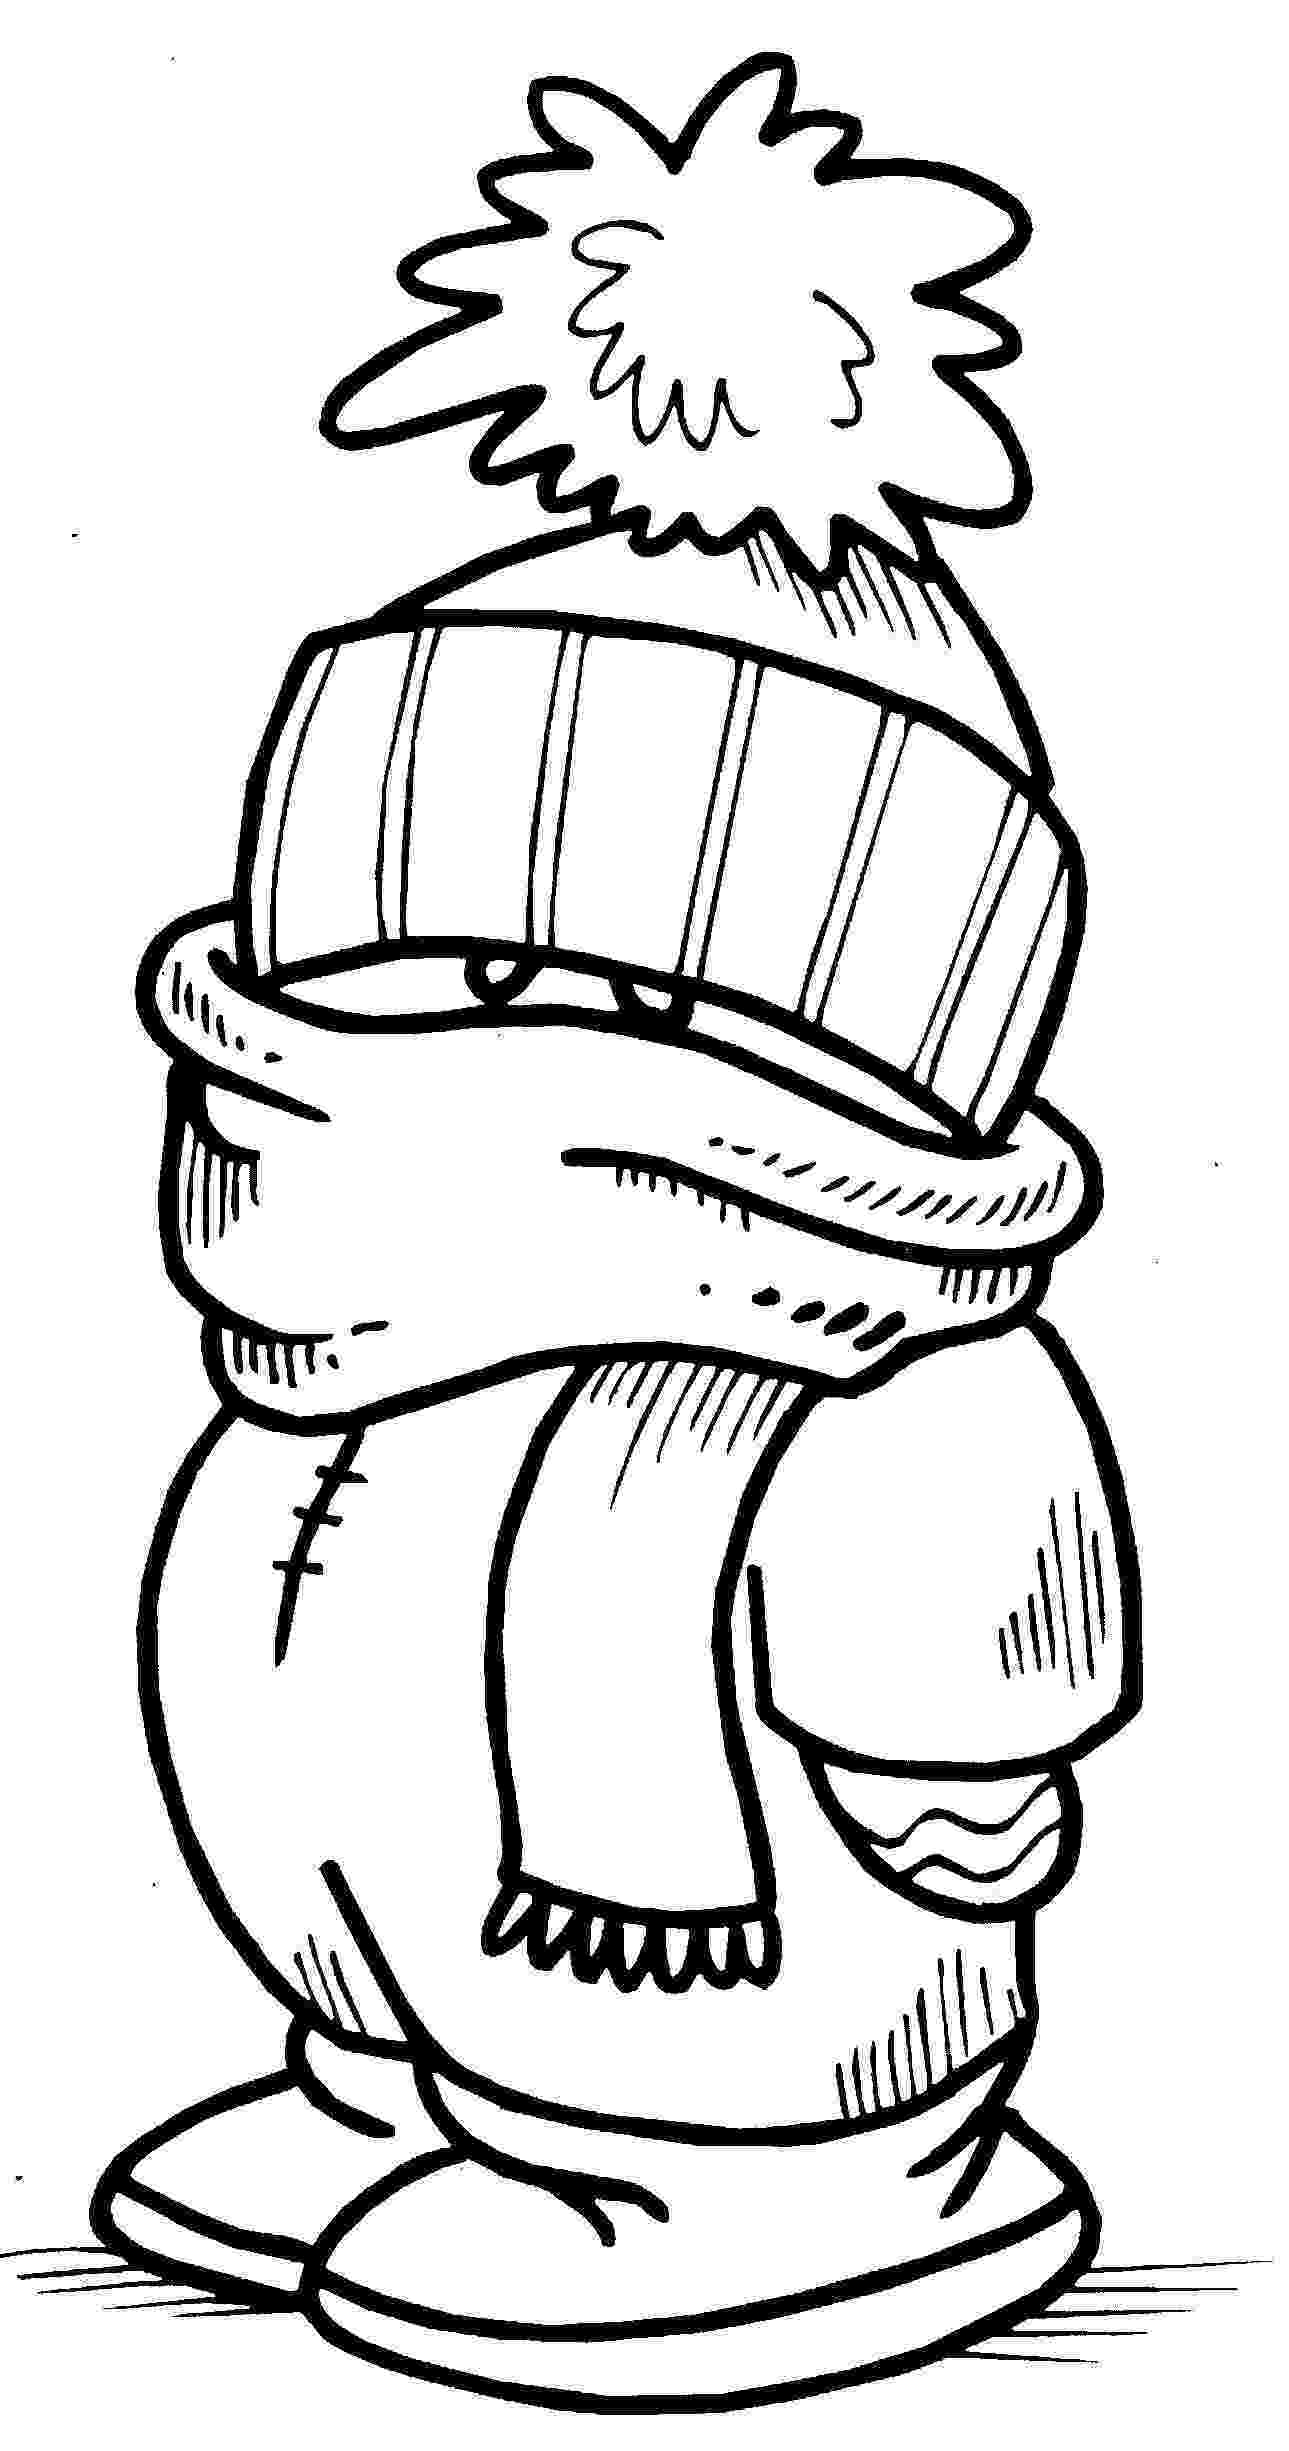 coloring pages of winter clothes winter scarf coloring pages coloring home clothes coloring pages winter of